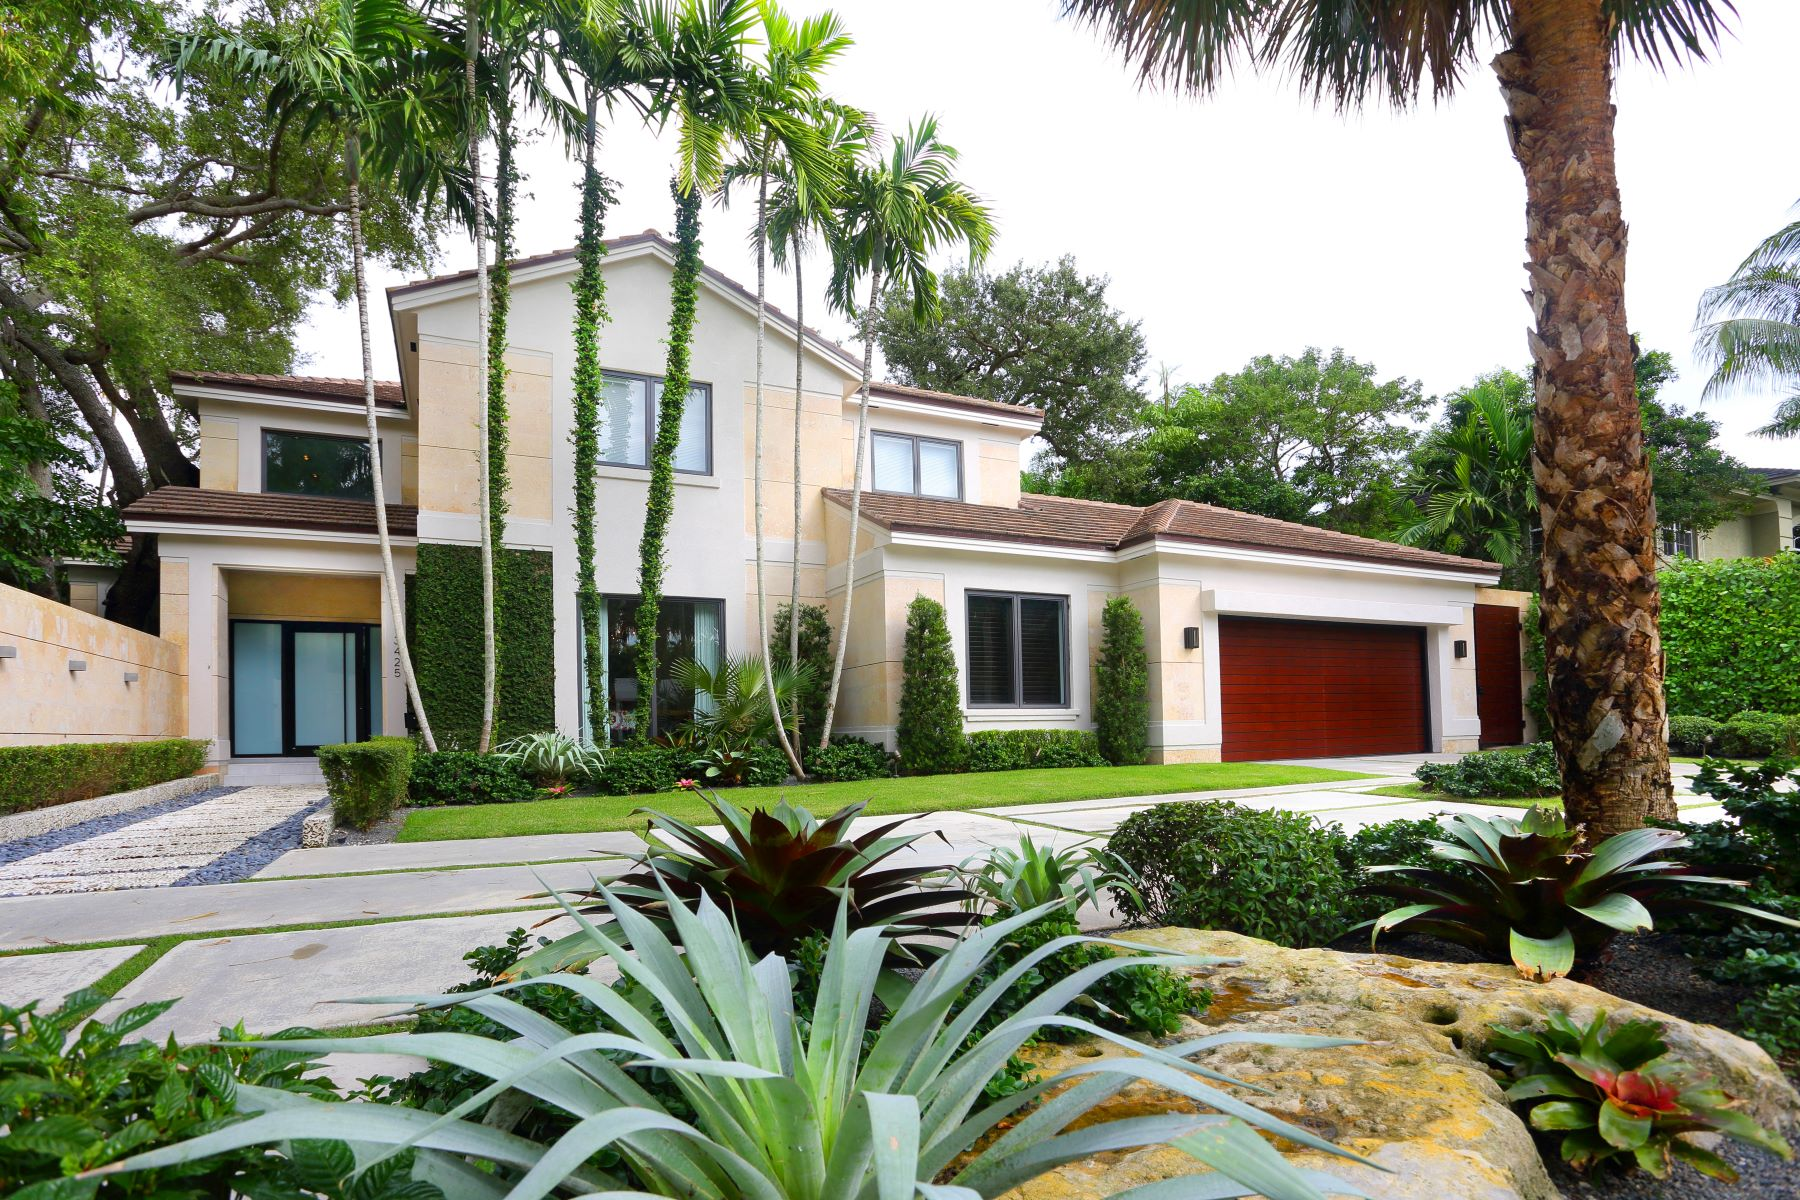 Single Family Home for Sale at 3425 N Moorings Way Coconut Grove, Florida, 33133 United States